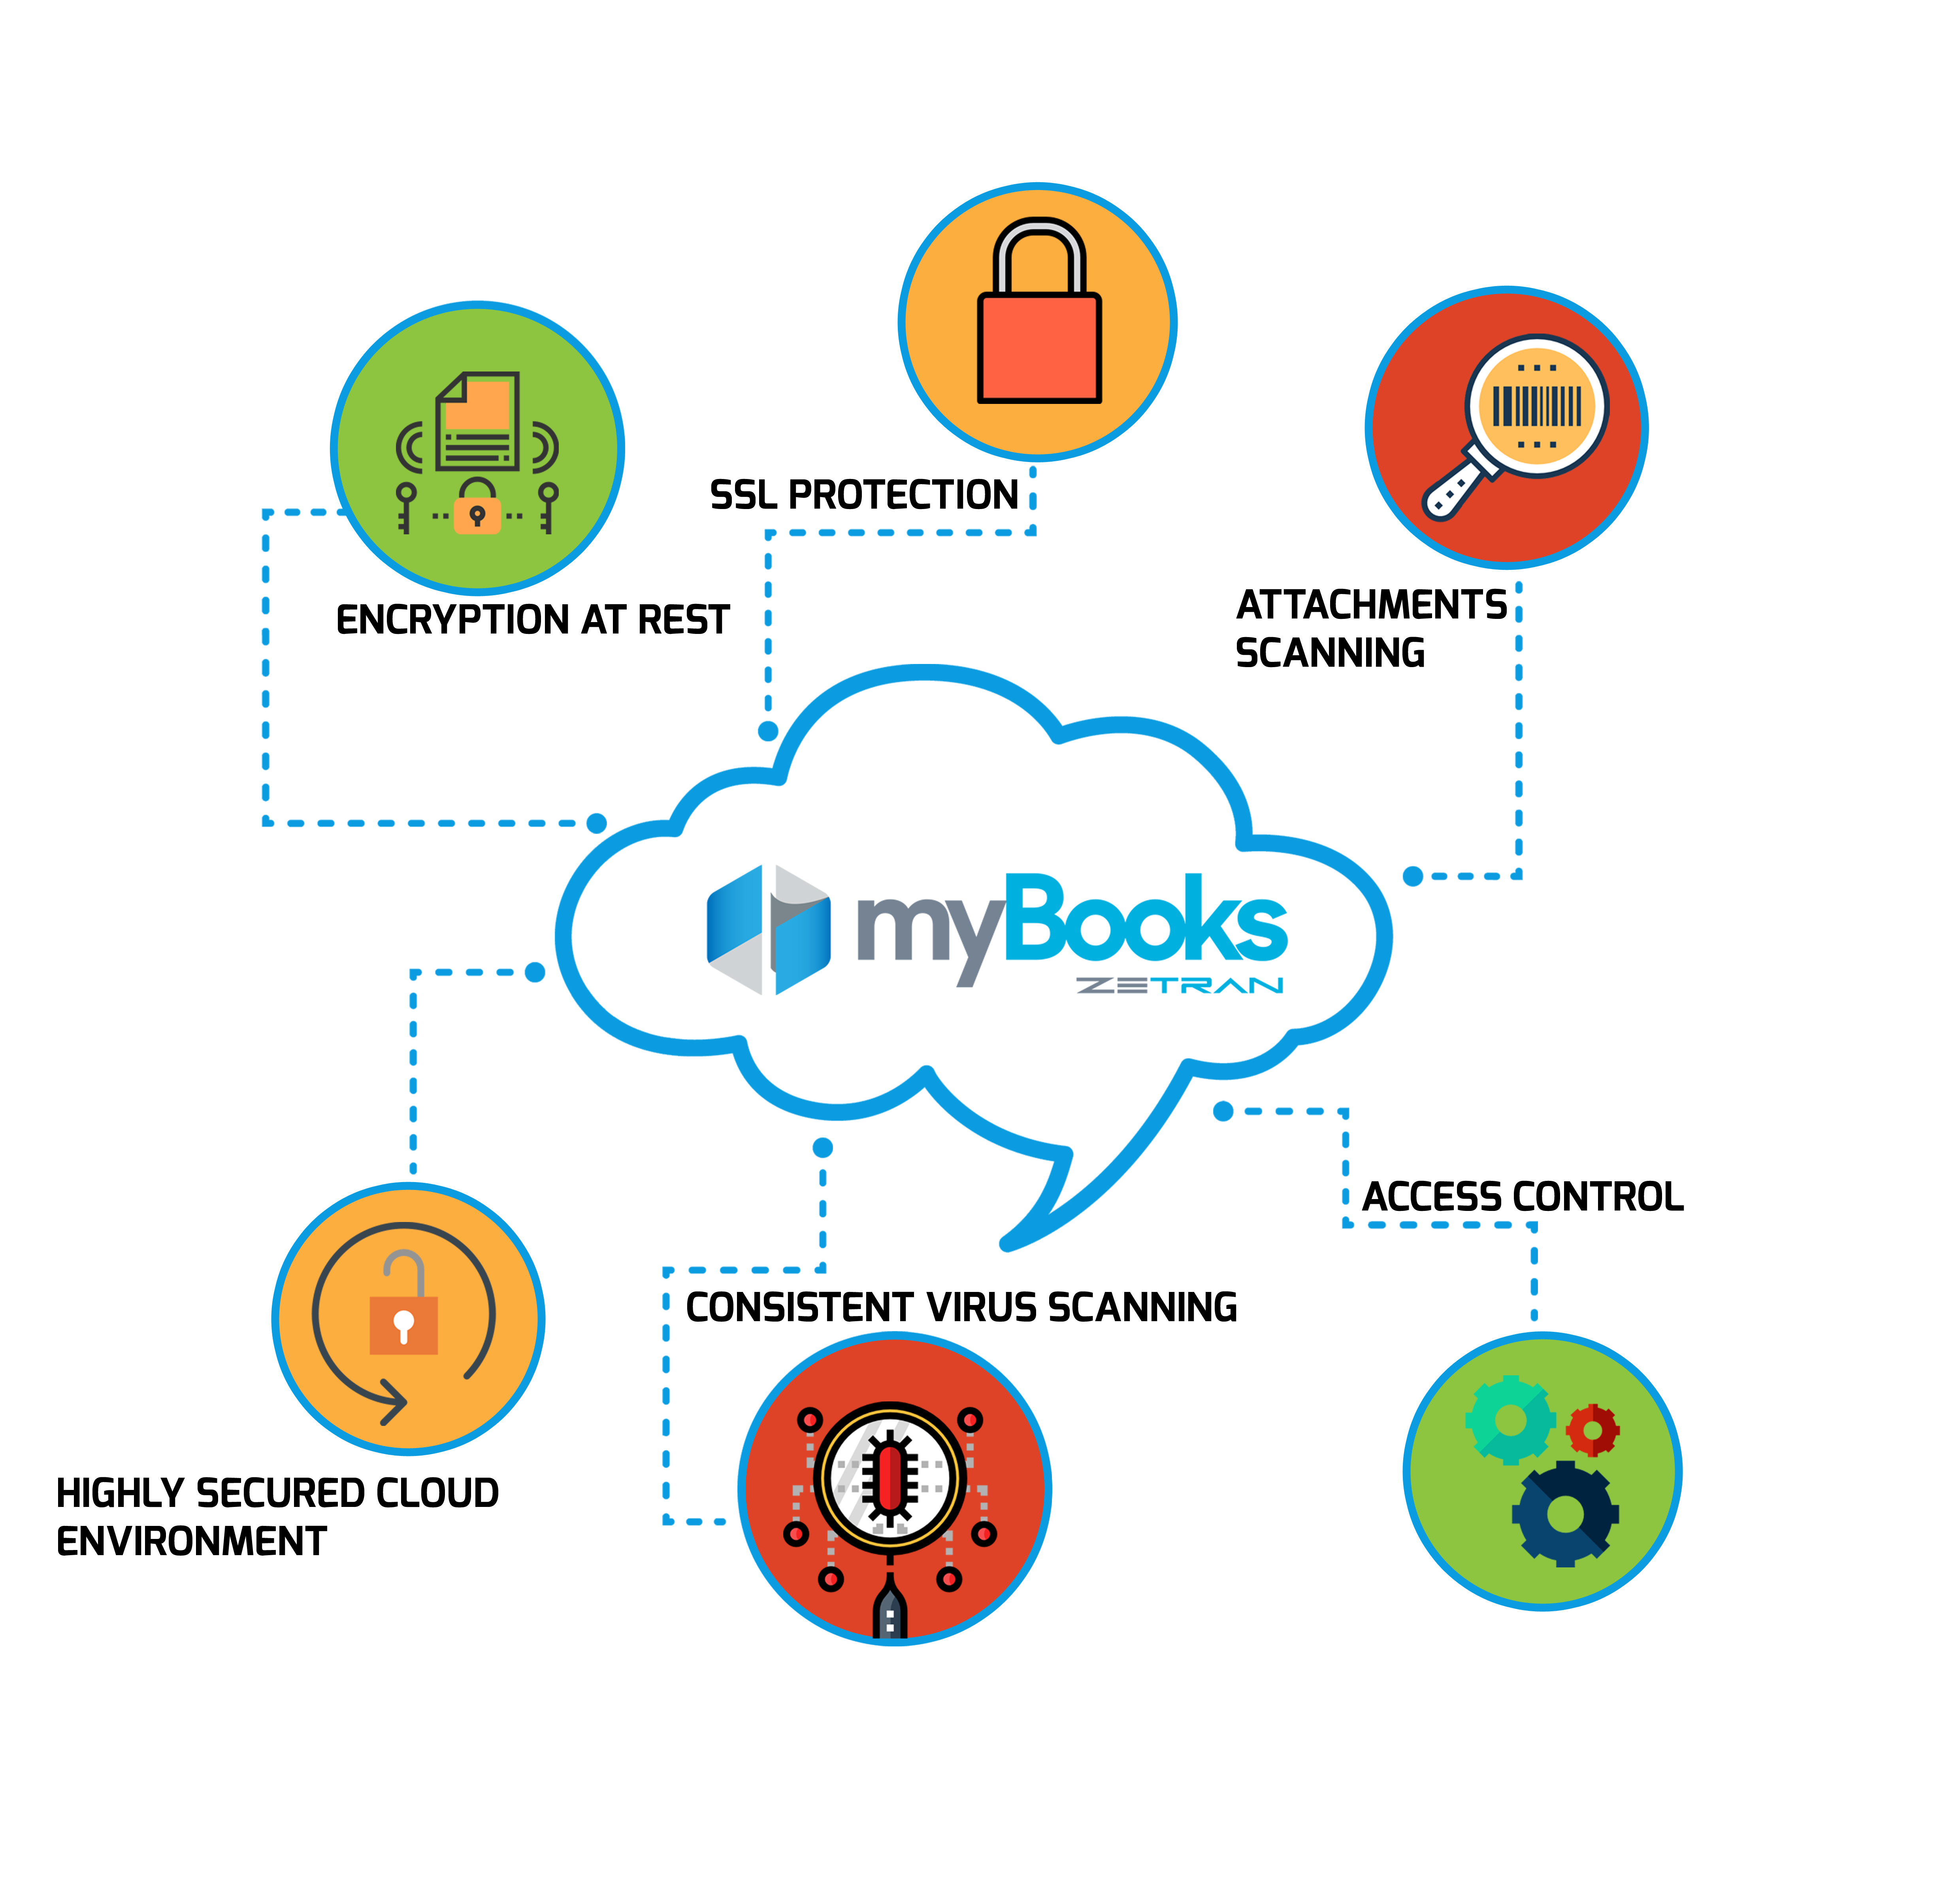 myBooks Security and Protection Measures